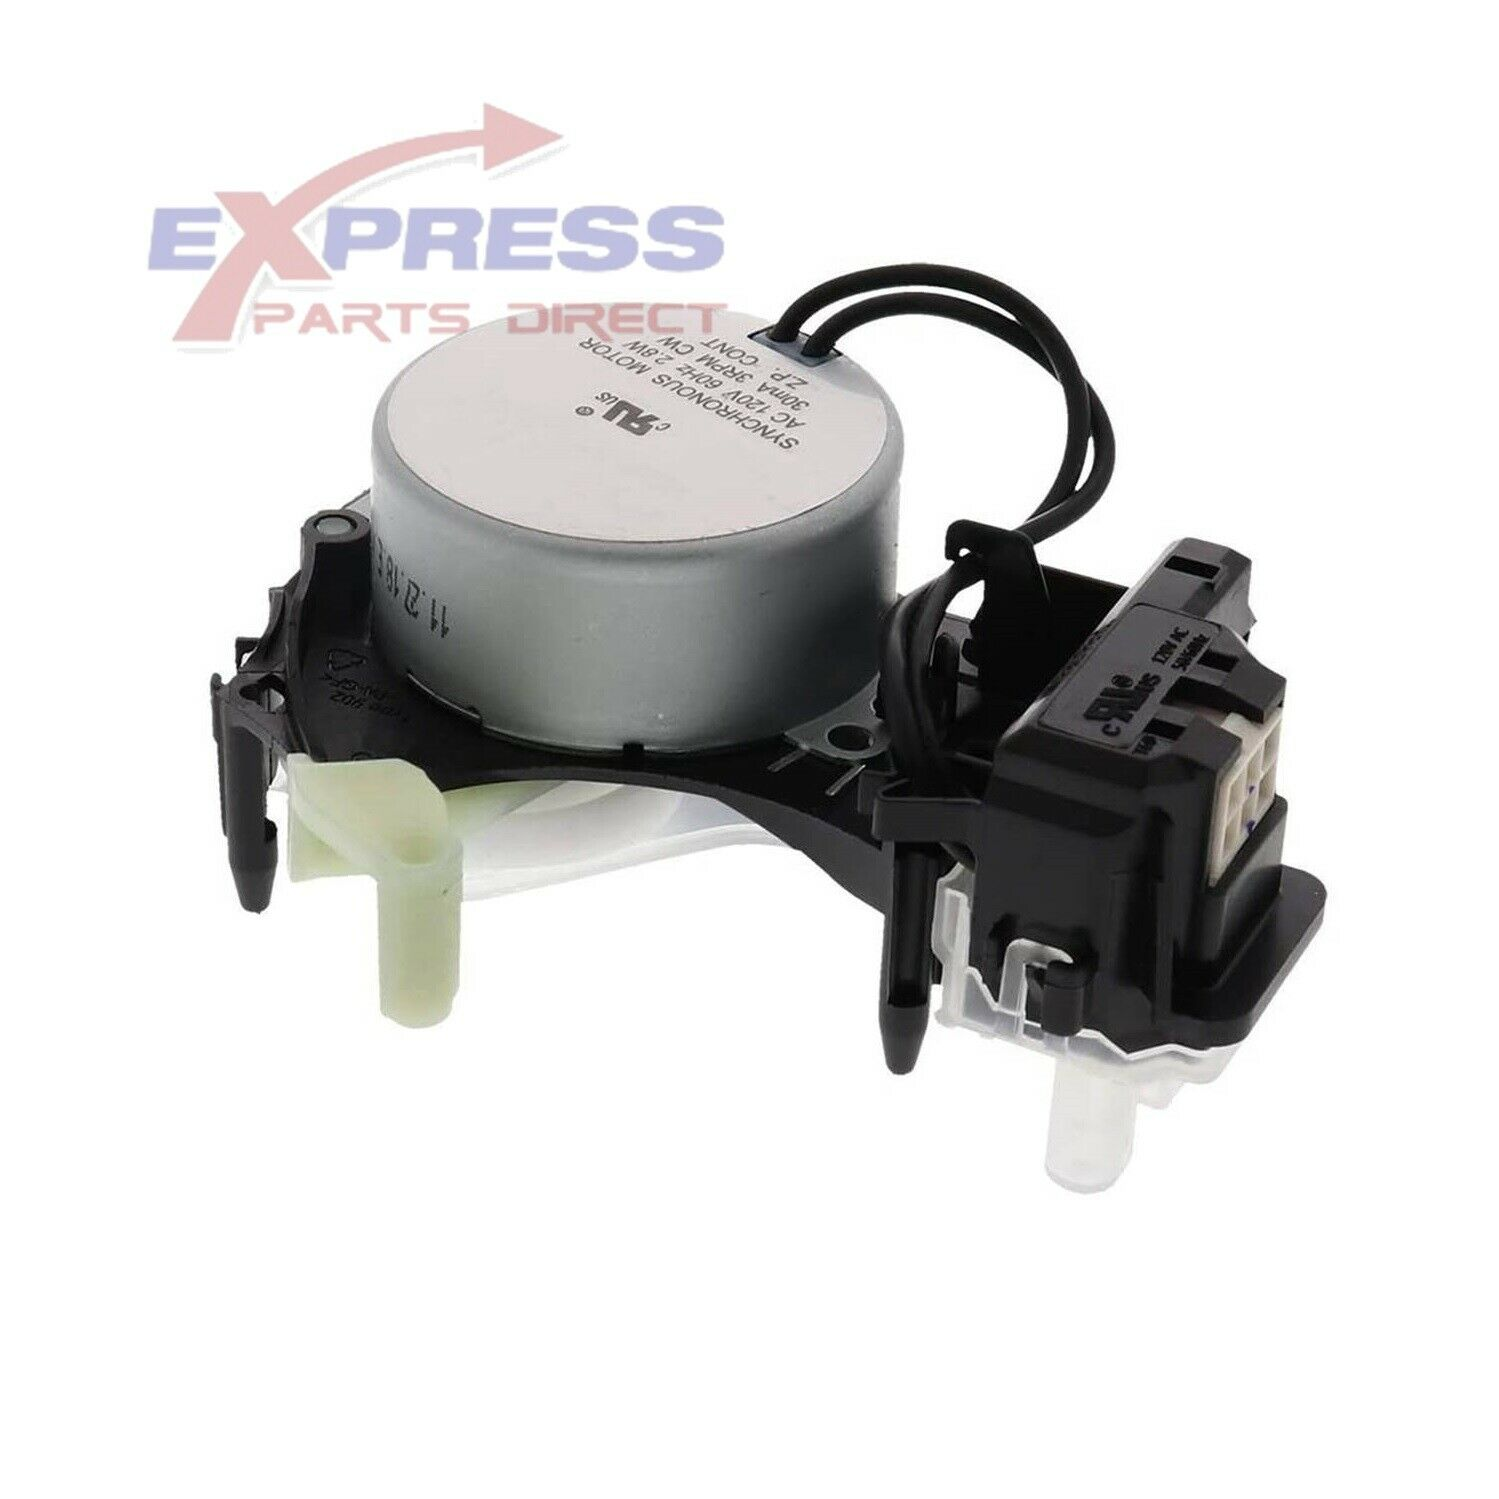 W10913953 Washer Shift Actuator for Whirlpool, Maytag W10597177, W10815026